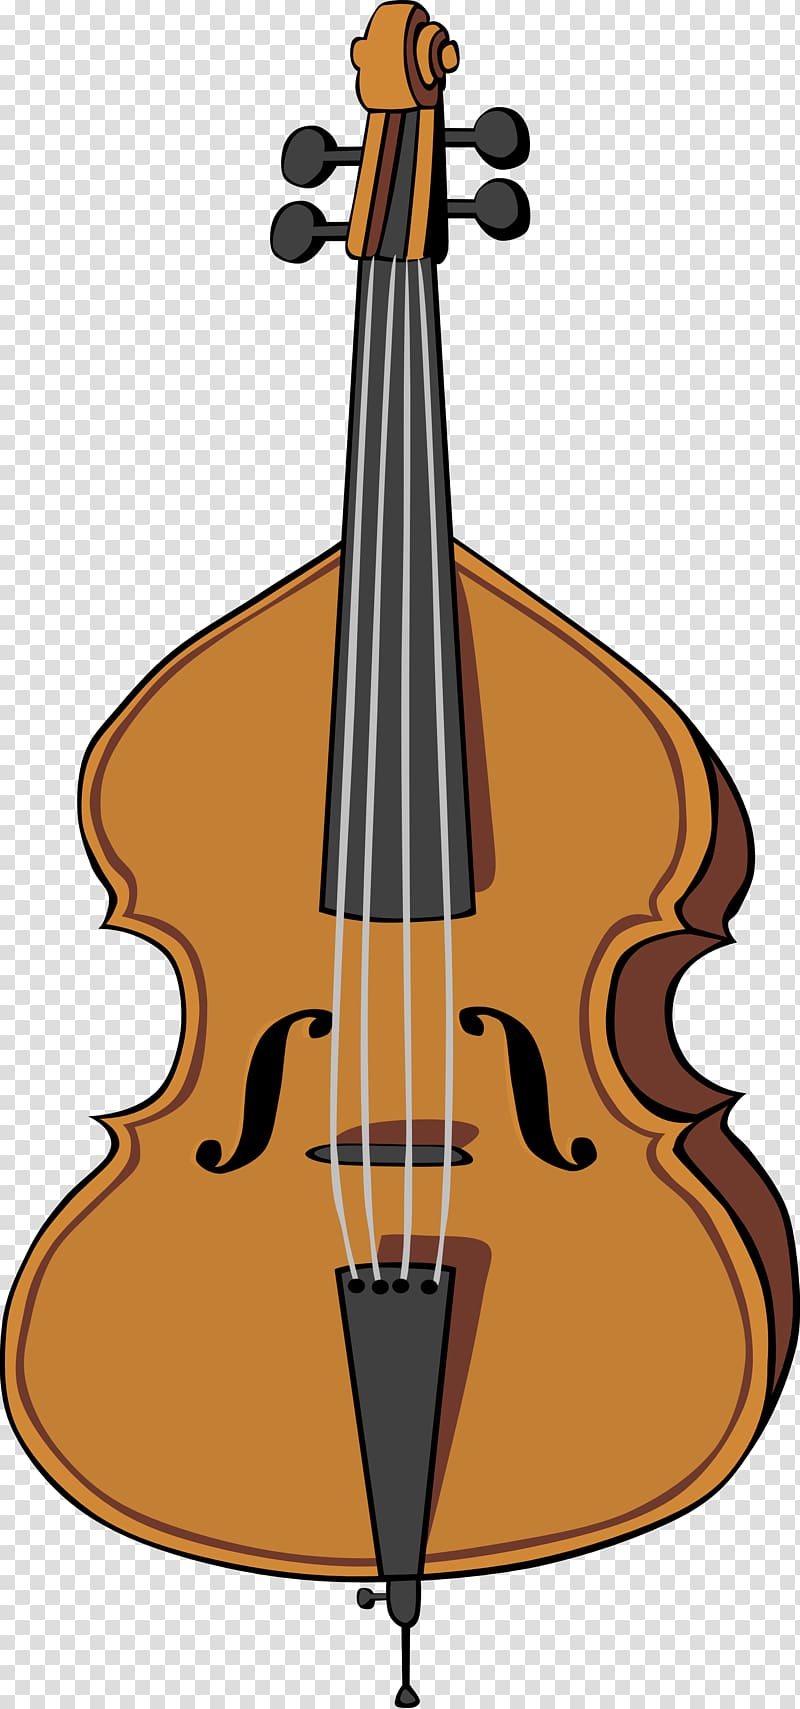 Violin cellist string bass. Cello clipart stringed instruments